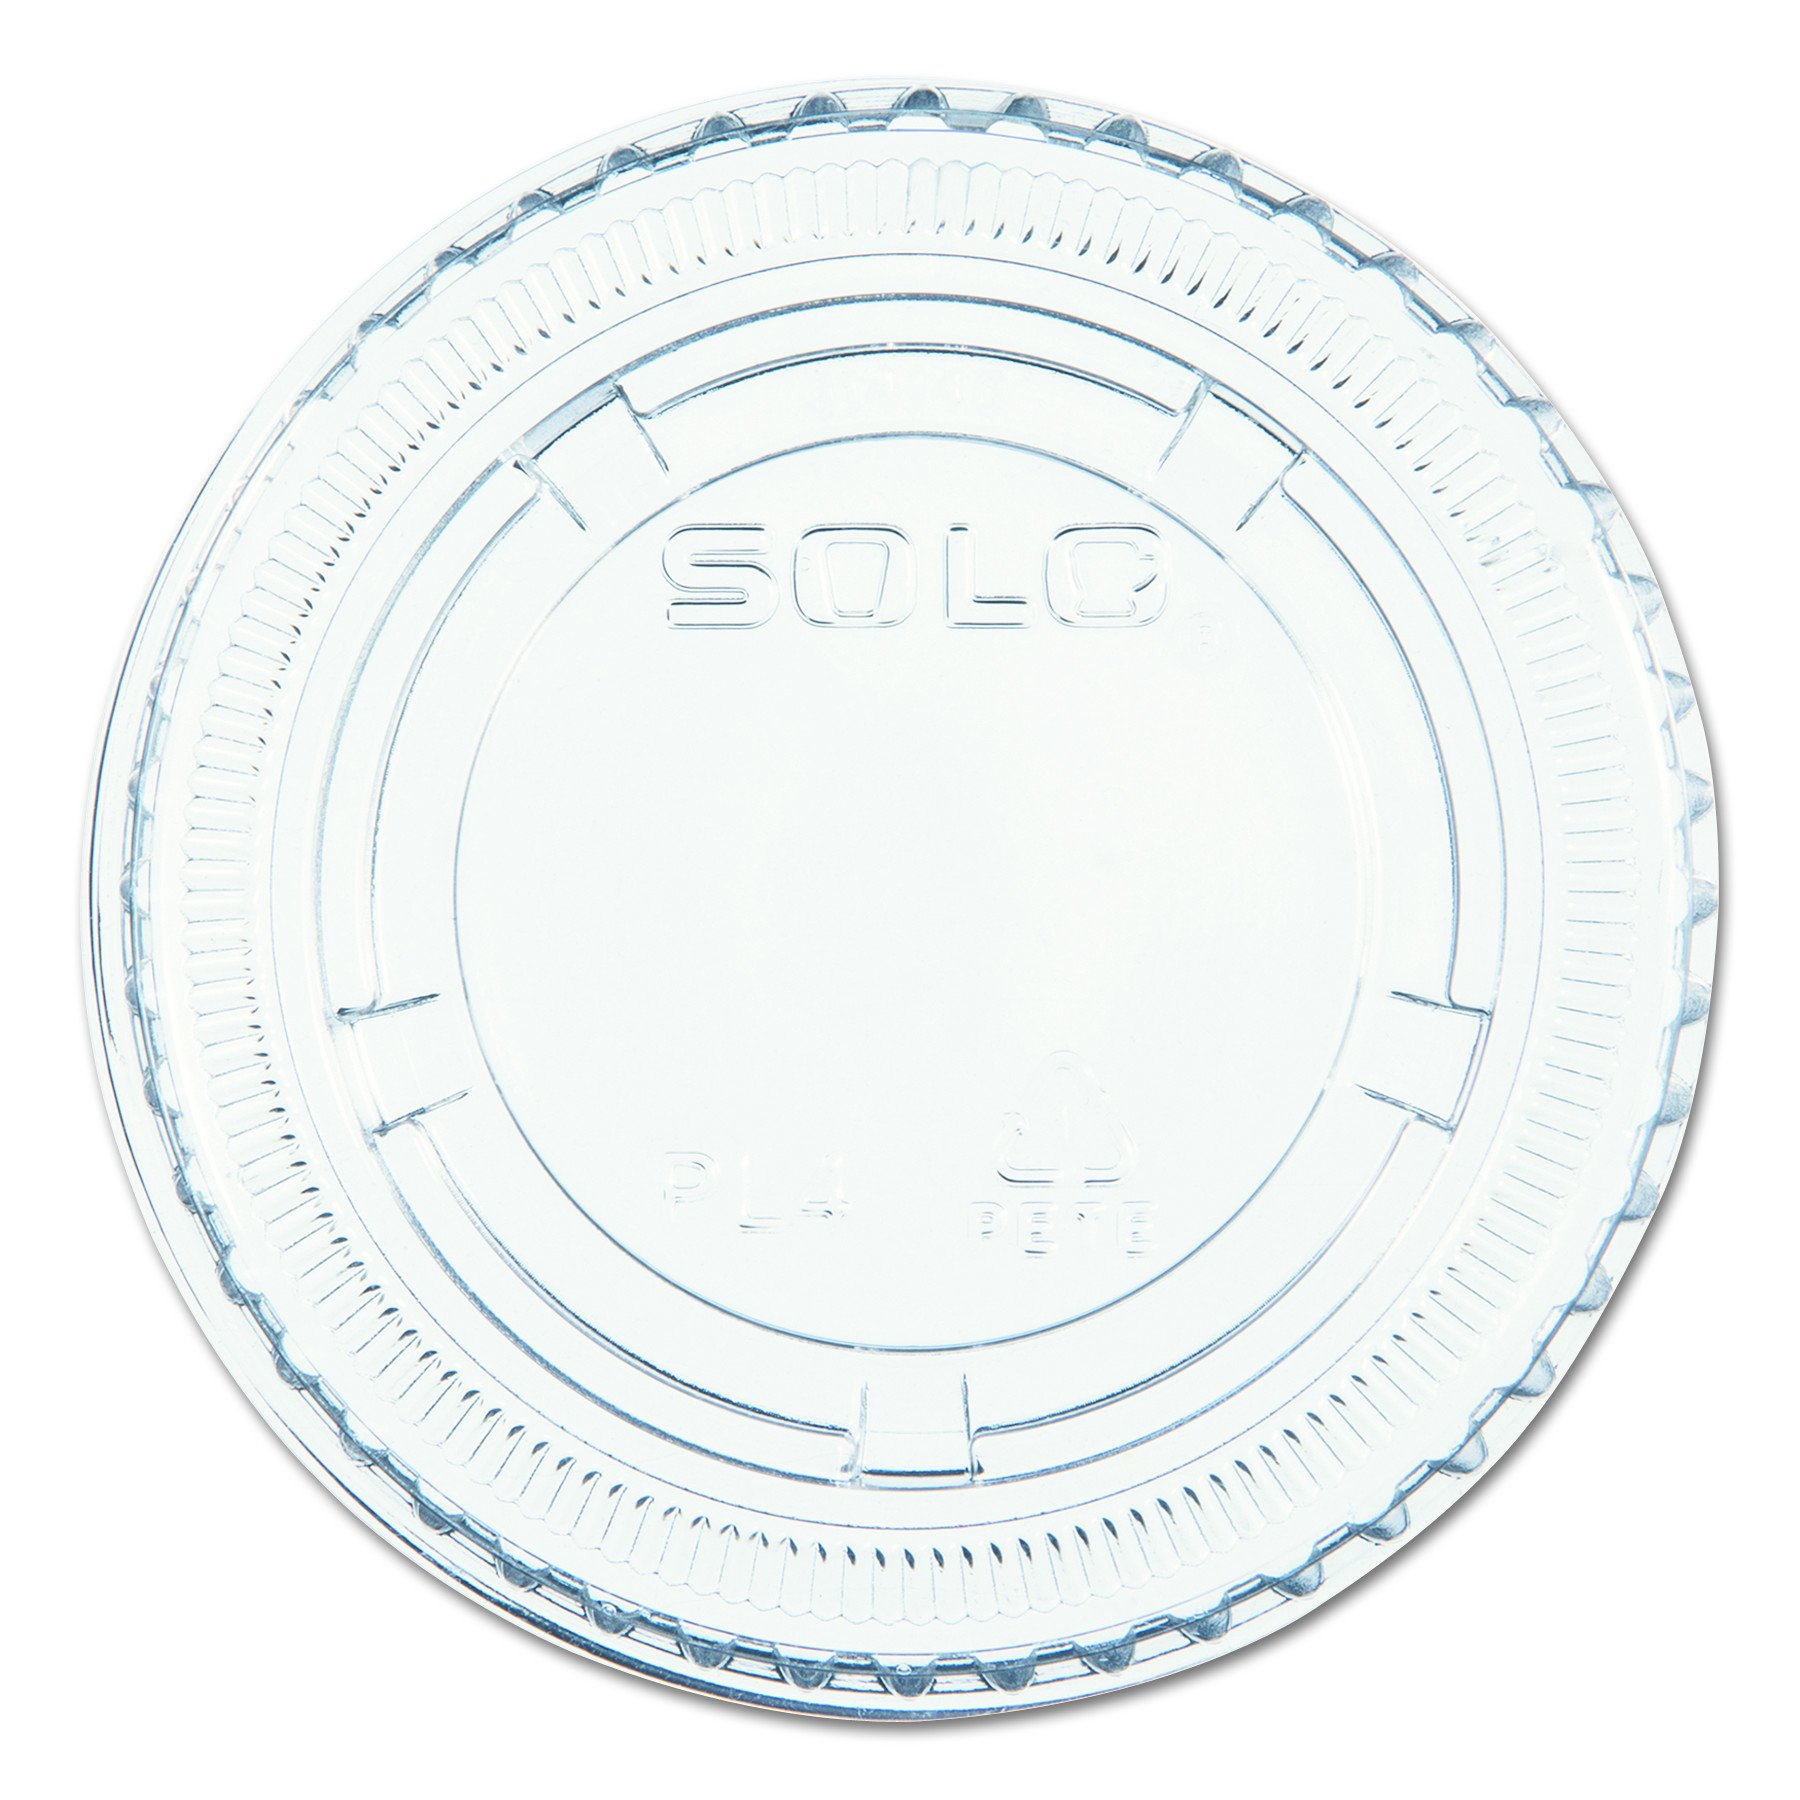 SOLO Cup Company PL4N No-Slot Plastic Cup Lids, Fits 3.25 - 5.5 oz Cups, Clear, 125 Per Sleeve (Case of 20 Sleeves) by SOLO